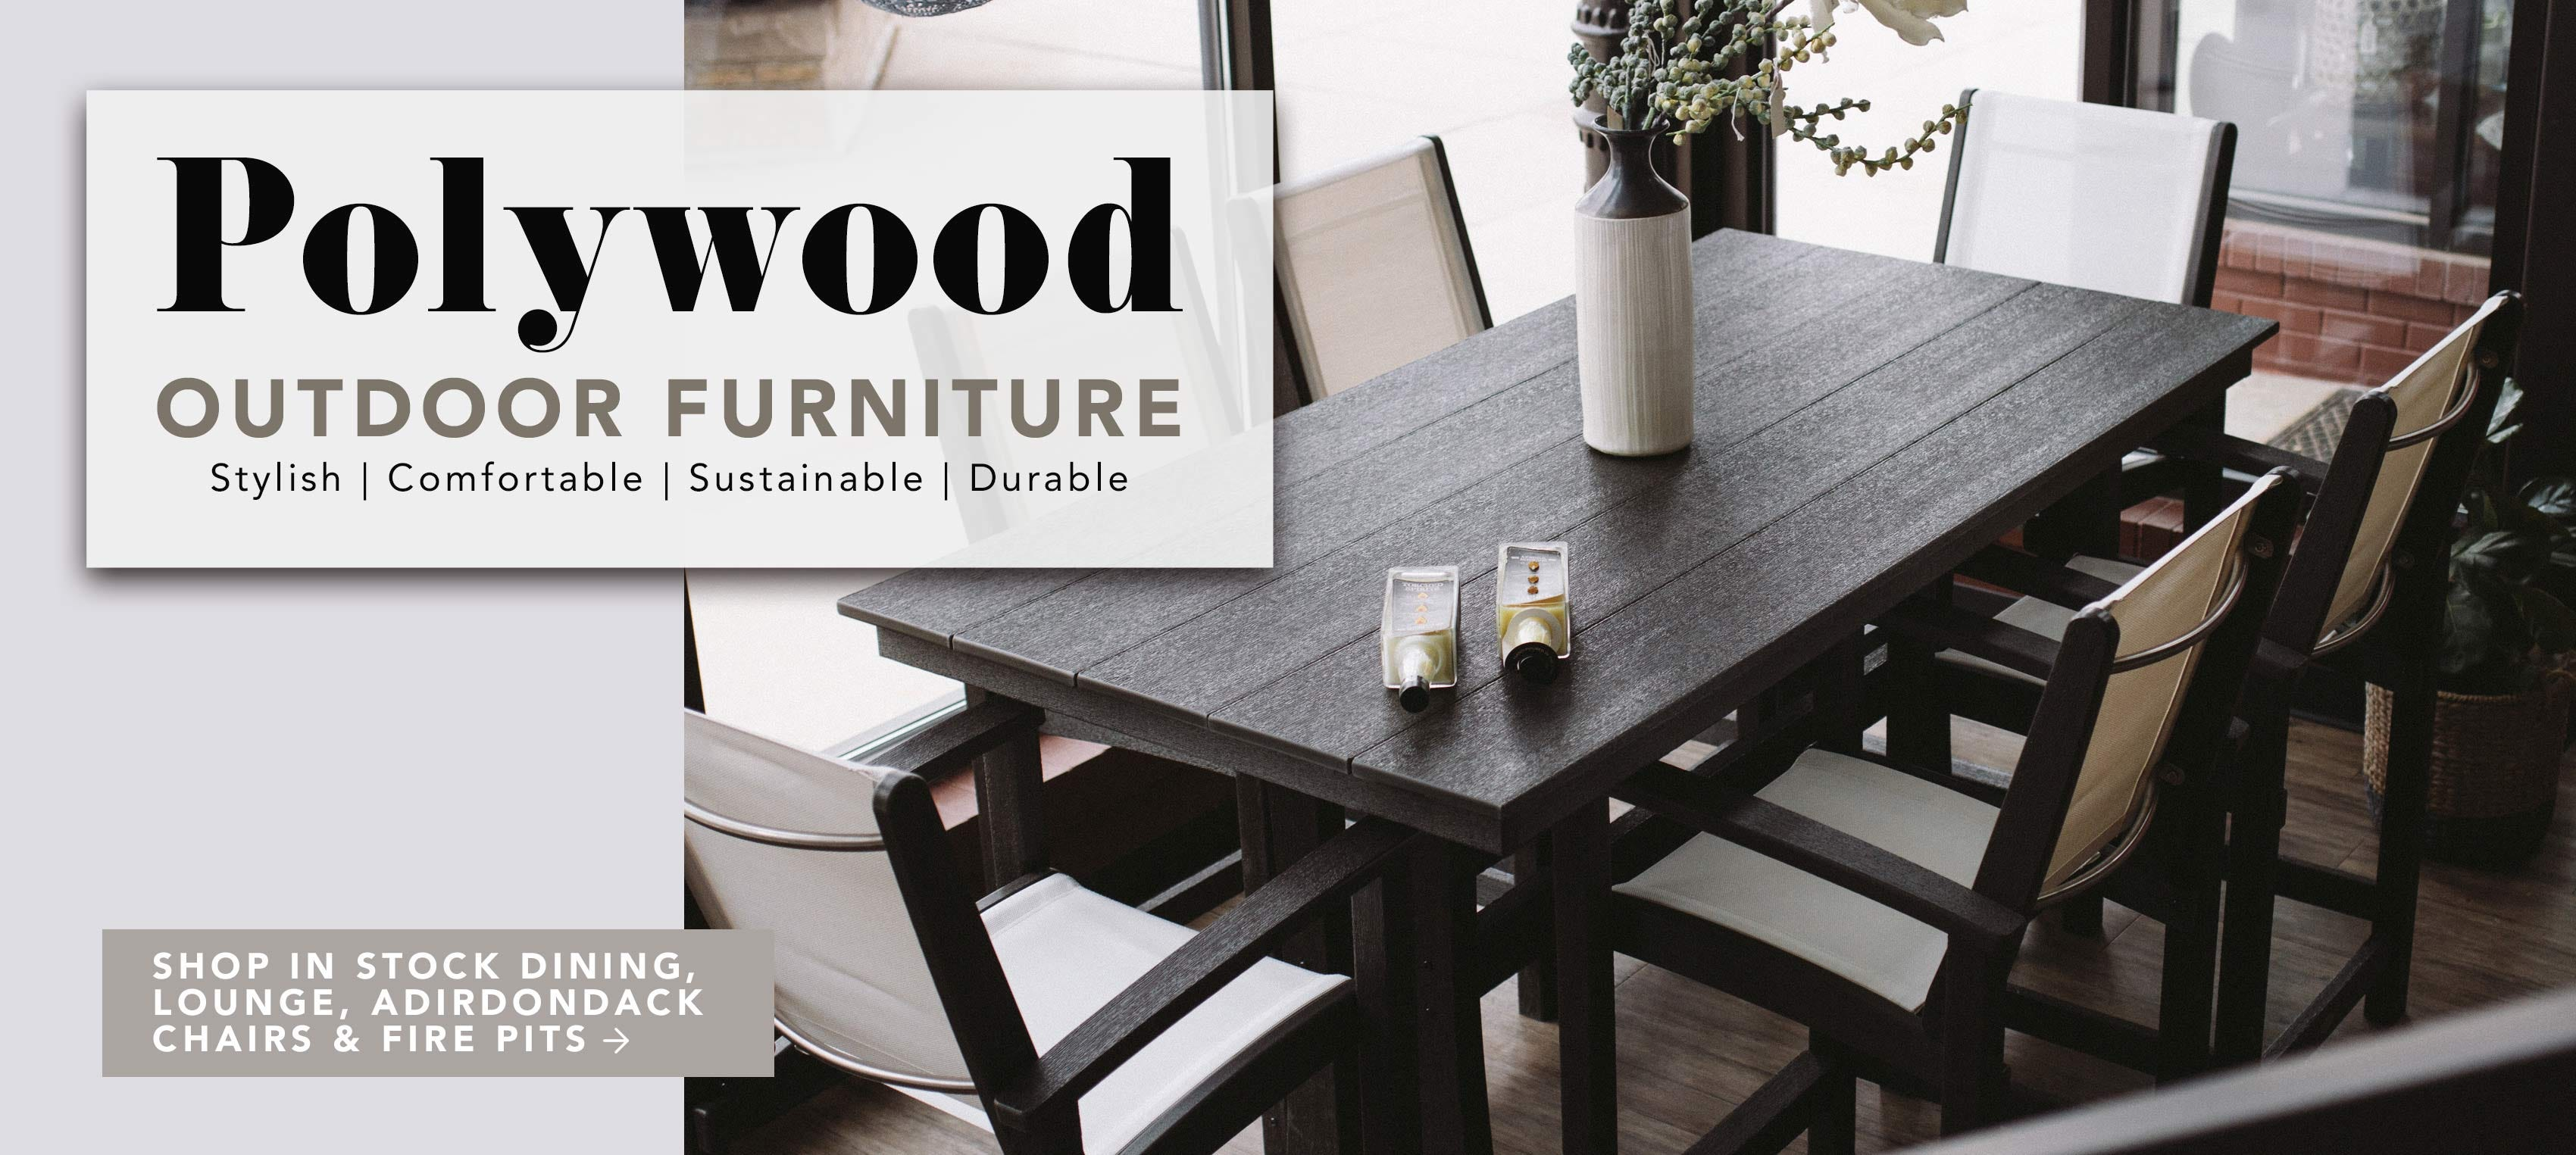 Polywood Outdoor Furniture - Stylish | Comfortable | Sustainable | Durable